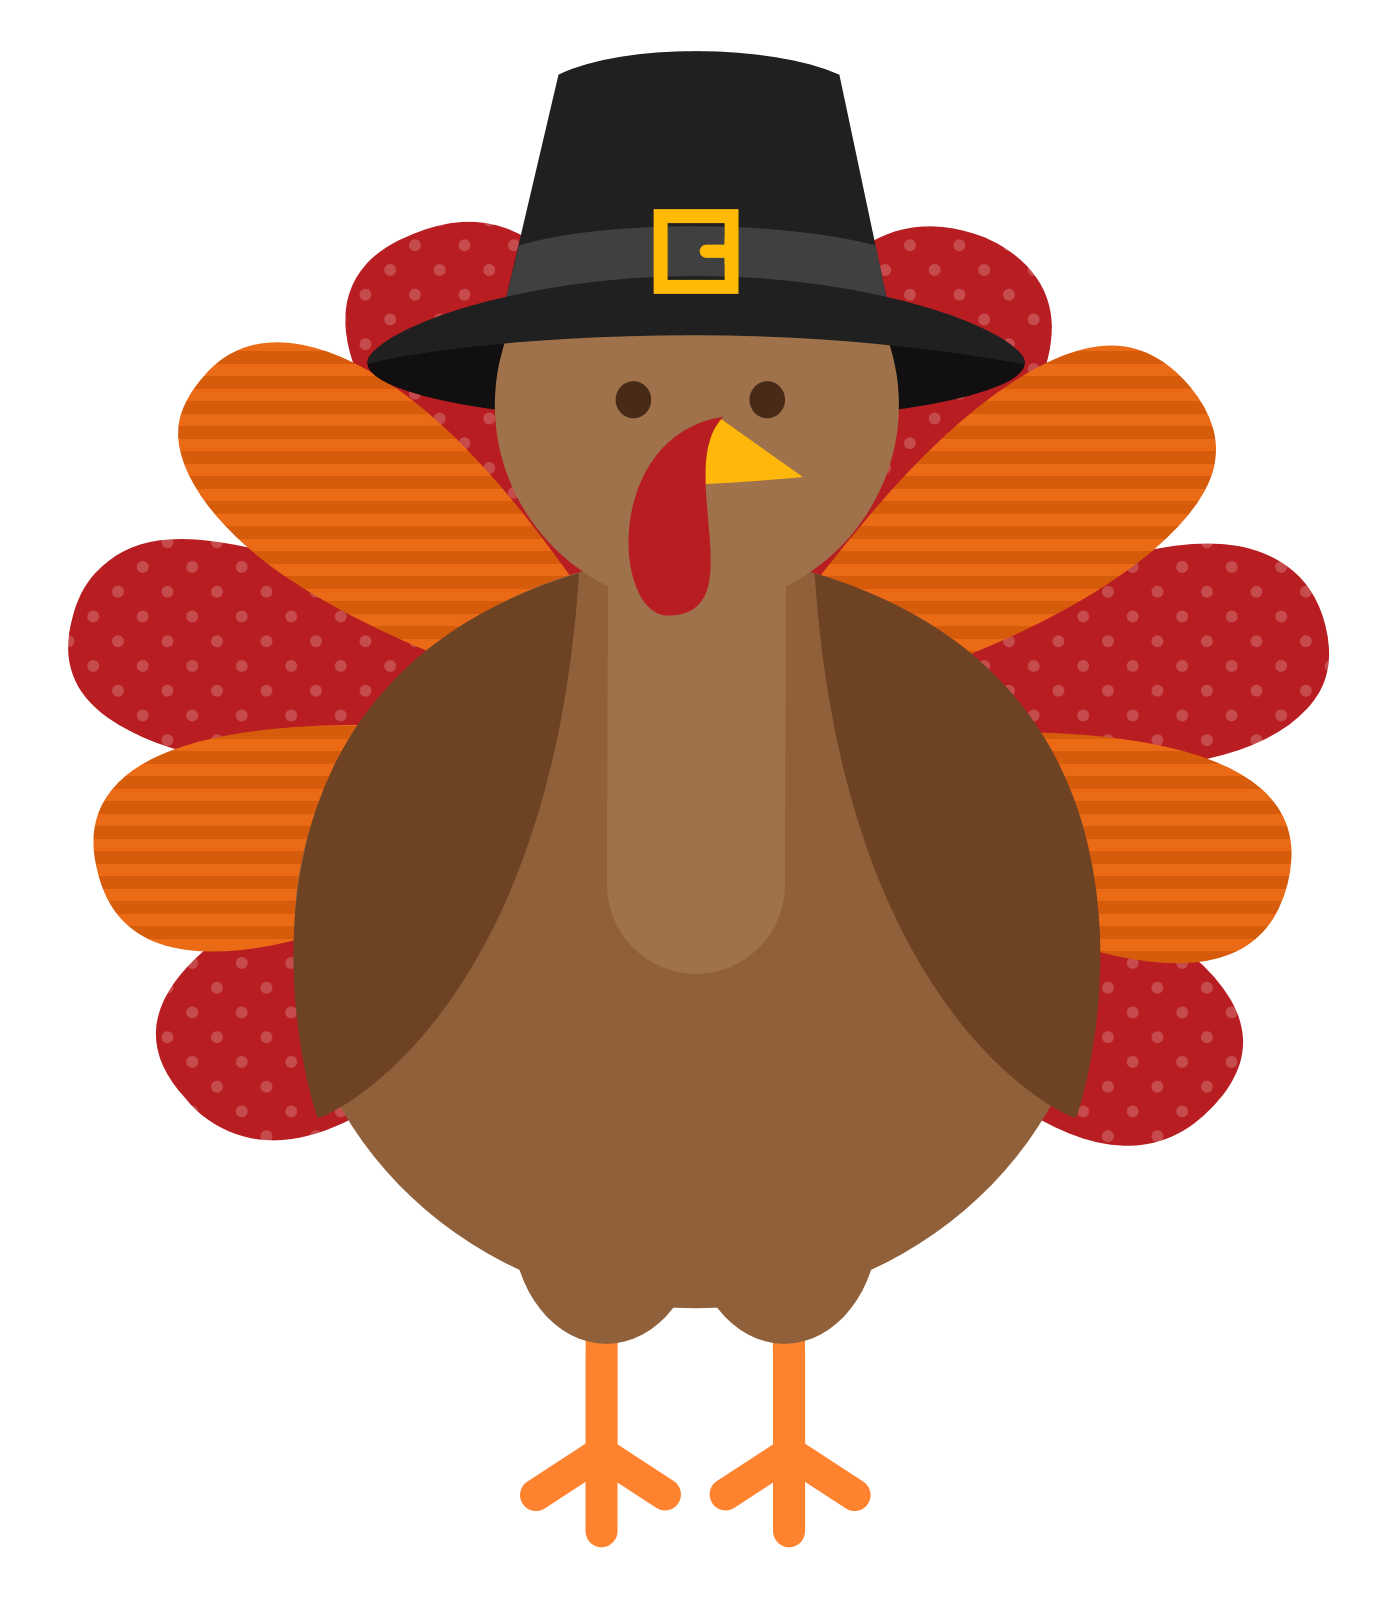 Thanksgiving free icons and. Cute turkey png free download